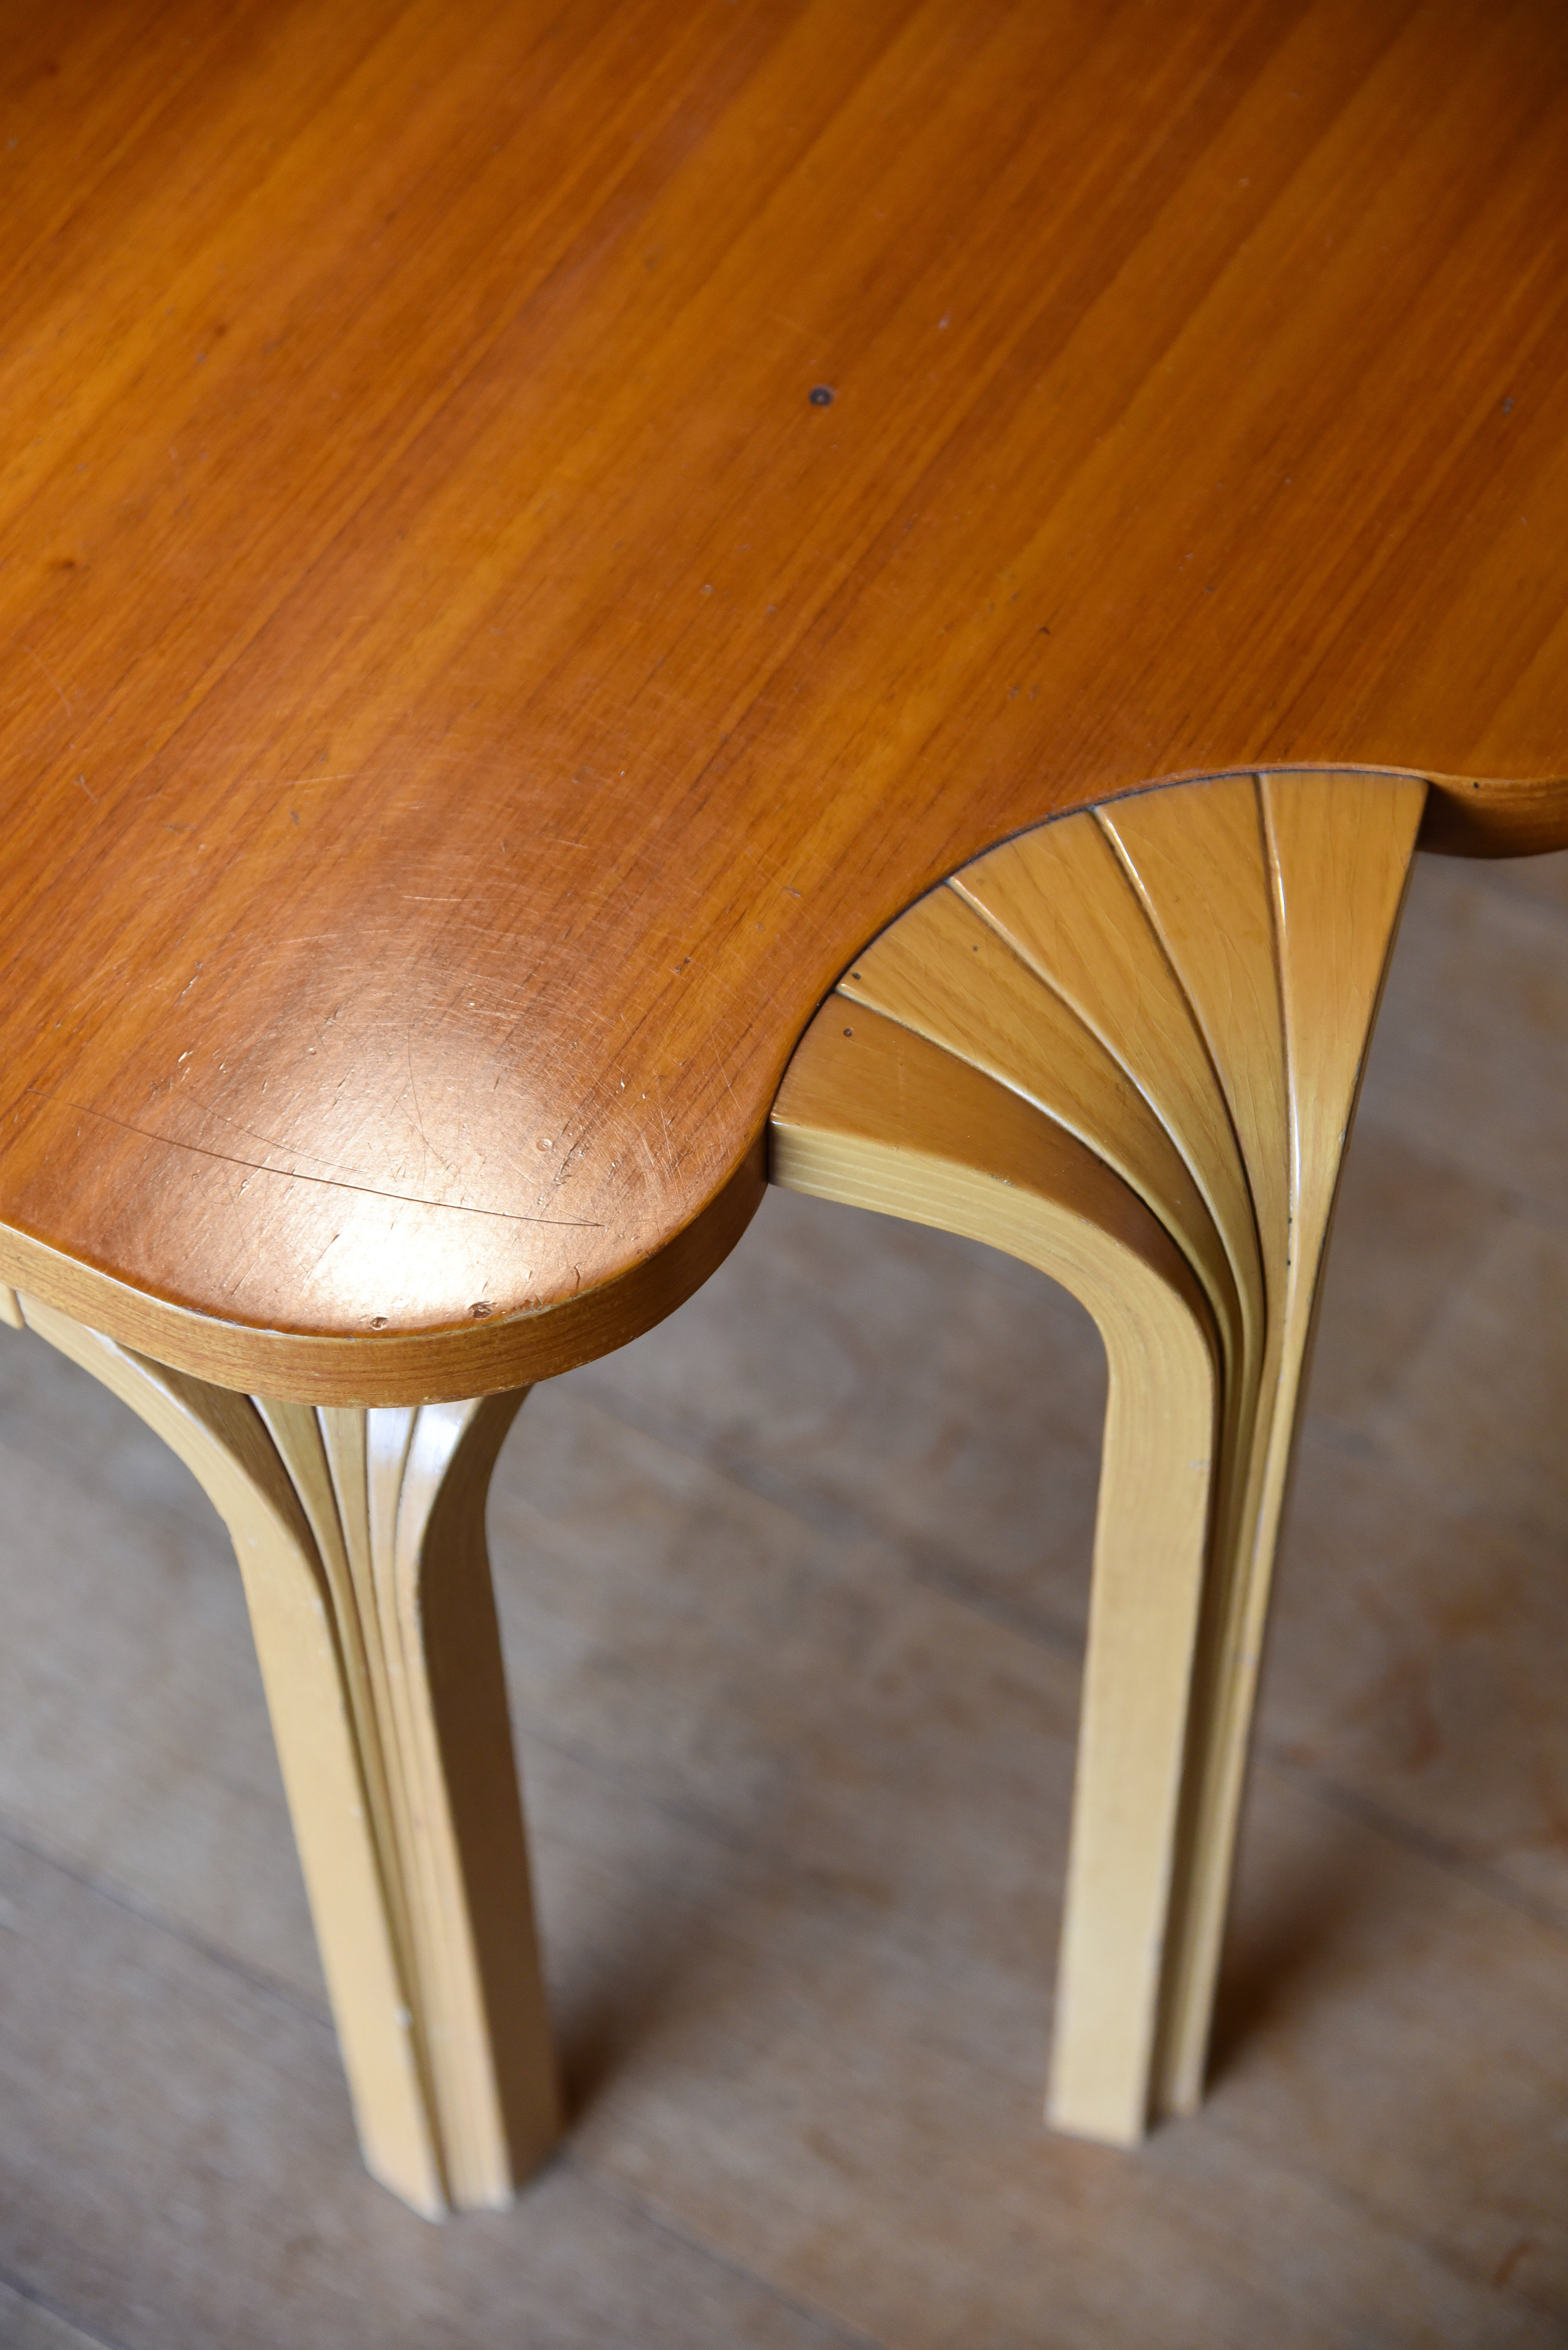 Fan or X leg with wood variation